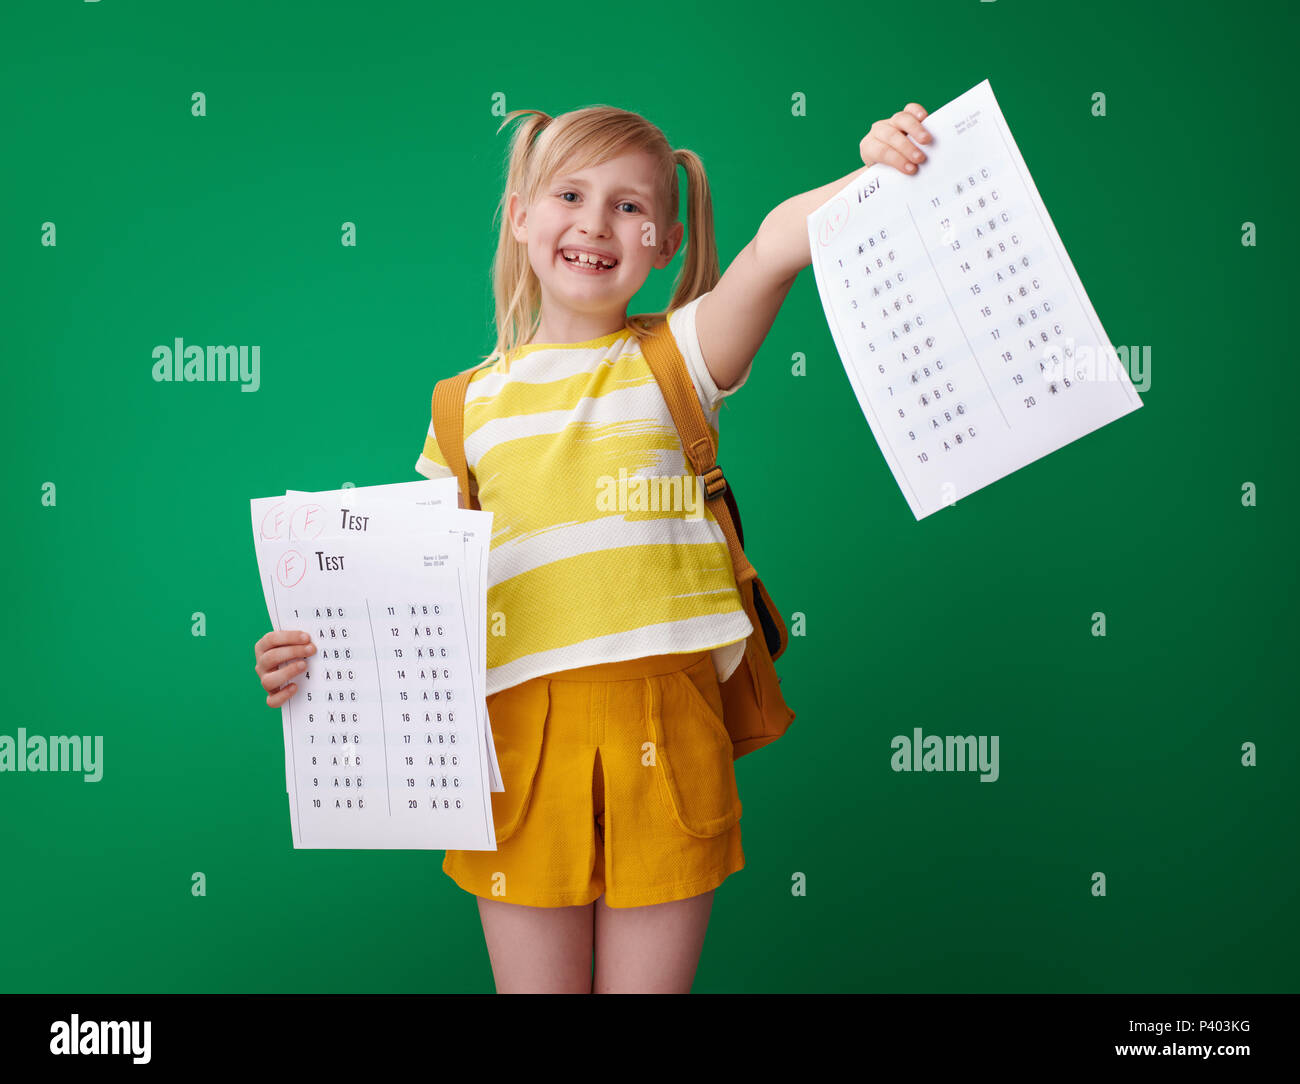 smiling school girl with backpack showing an excellent grade test after several failures on green background - Stock Image